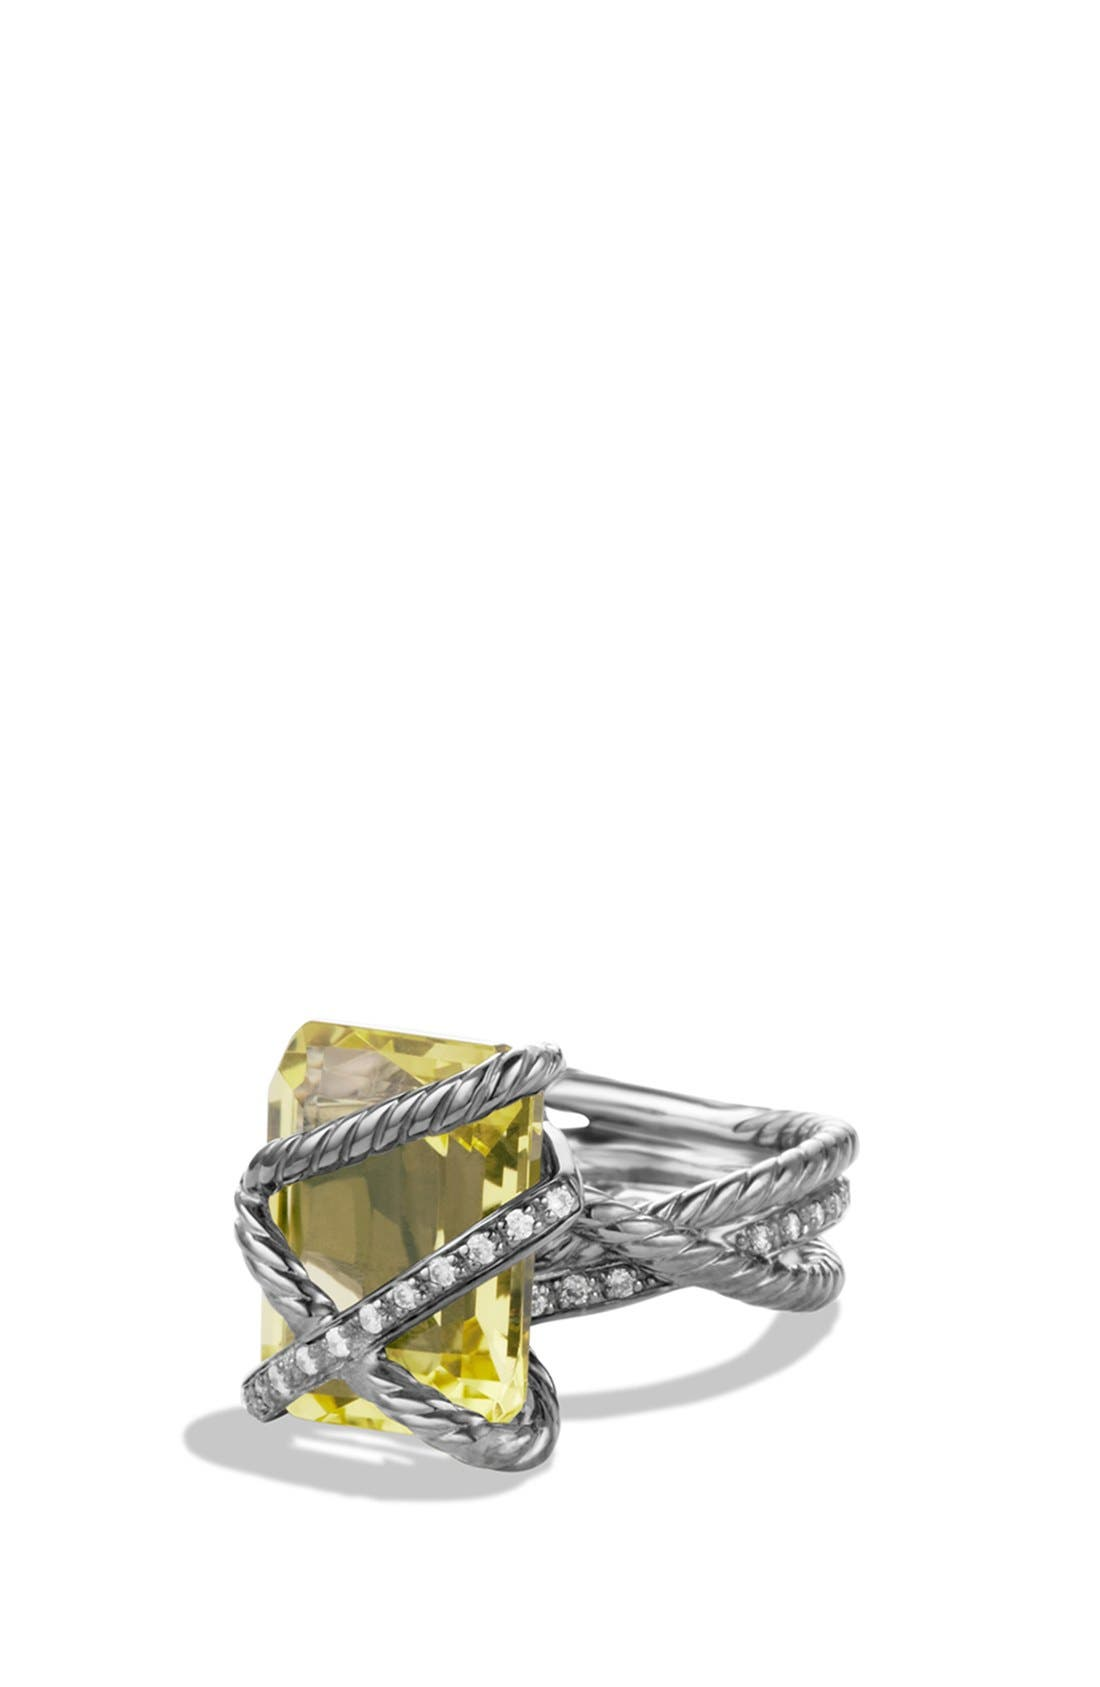 'Cable Wrap' Ring with Lemon Citrine and Diamonds,                             Main thumbnail 1, color,                             720